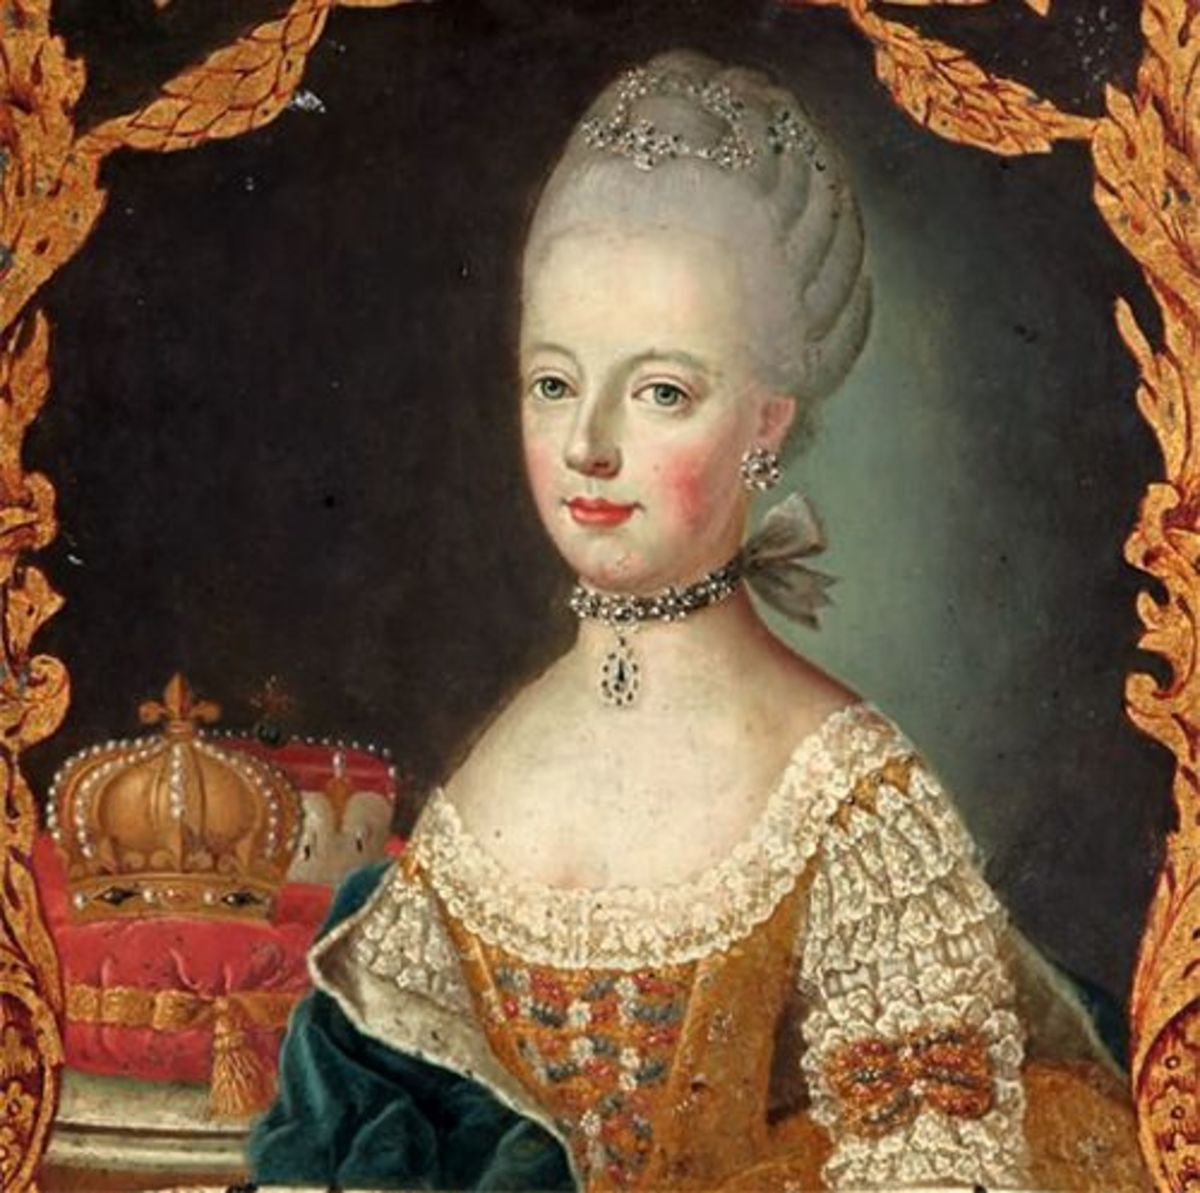 Portrait of Marie Antoinette in 1774 (artist unknown)